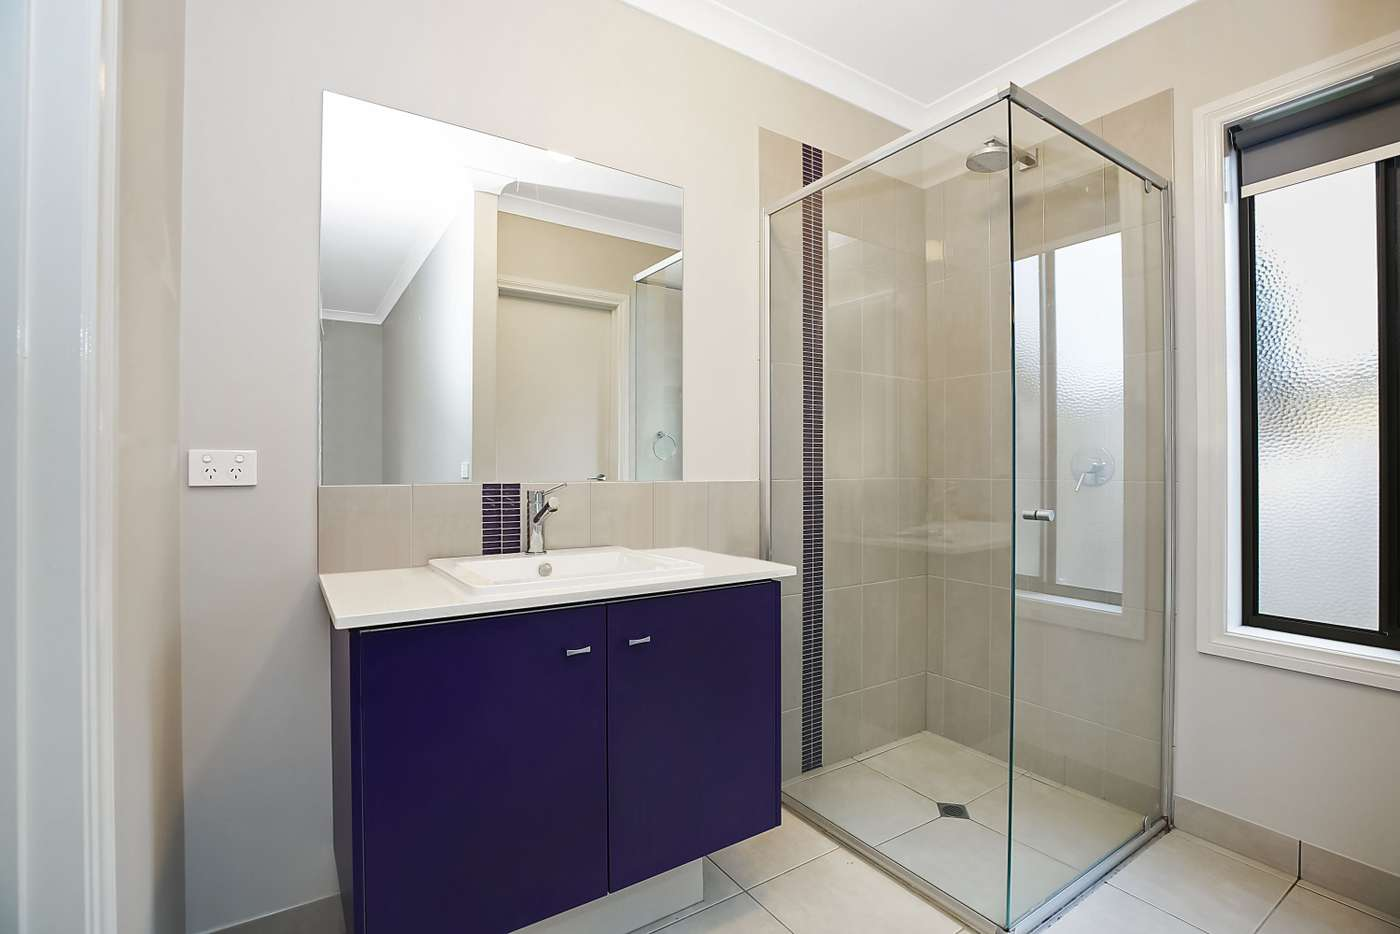 Seventh view of Homely house listing, 20 McAlpine Court, Camperdown VIC 3260